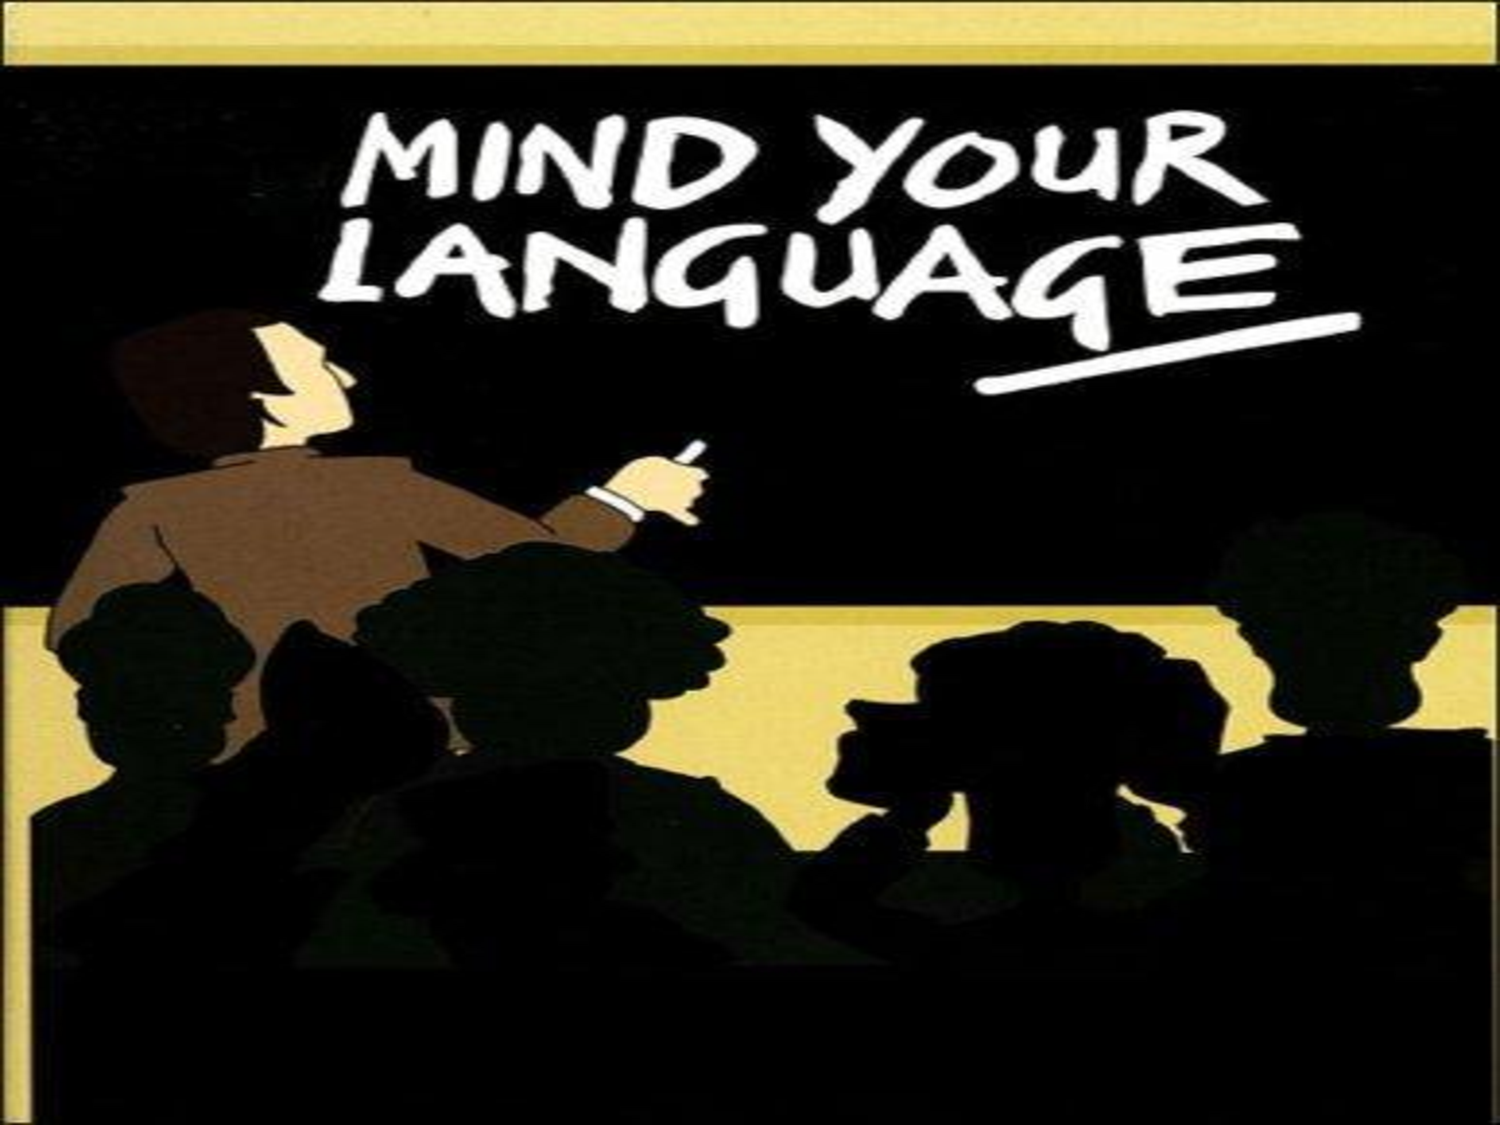 A still of the cartoon introduction sequence of Mind Your Language